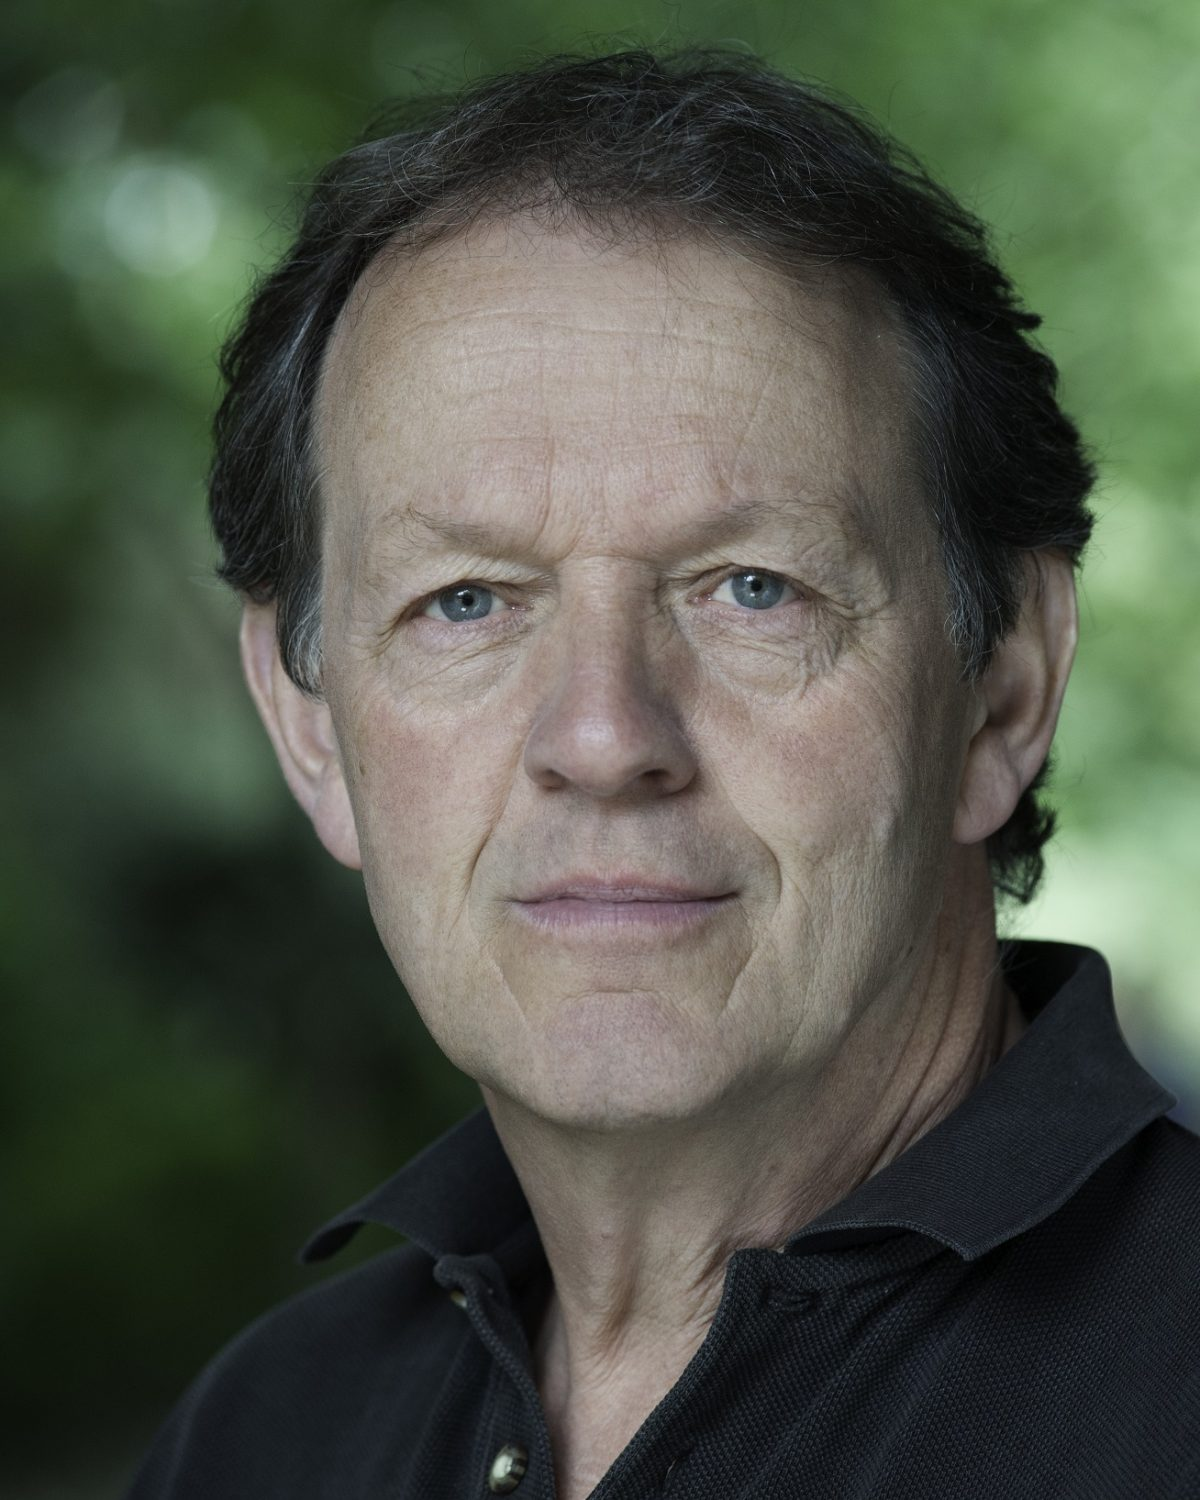 We recently caught up with up with the host of Our Finest Hour, Kevin Whately for a quick chat about the tour which heads to St David's Hall in Cardiff